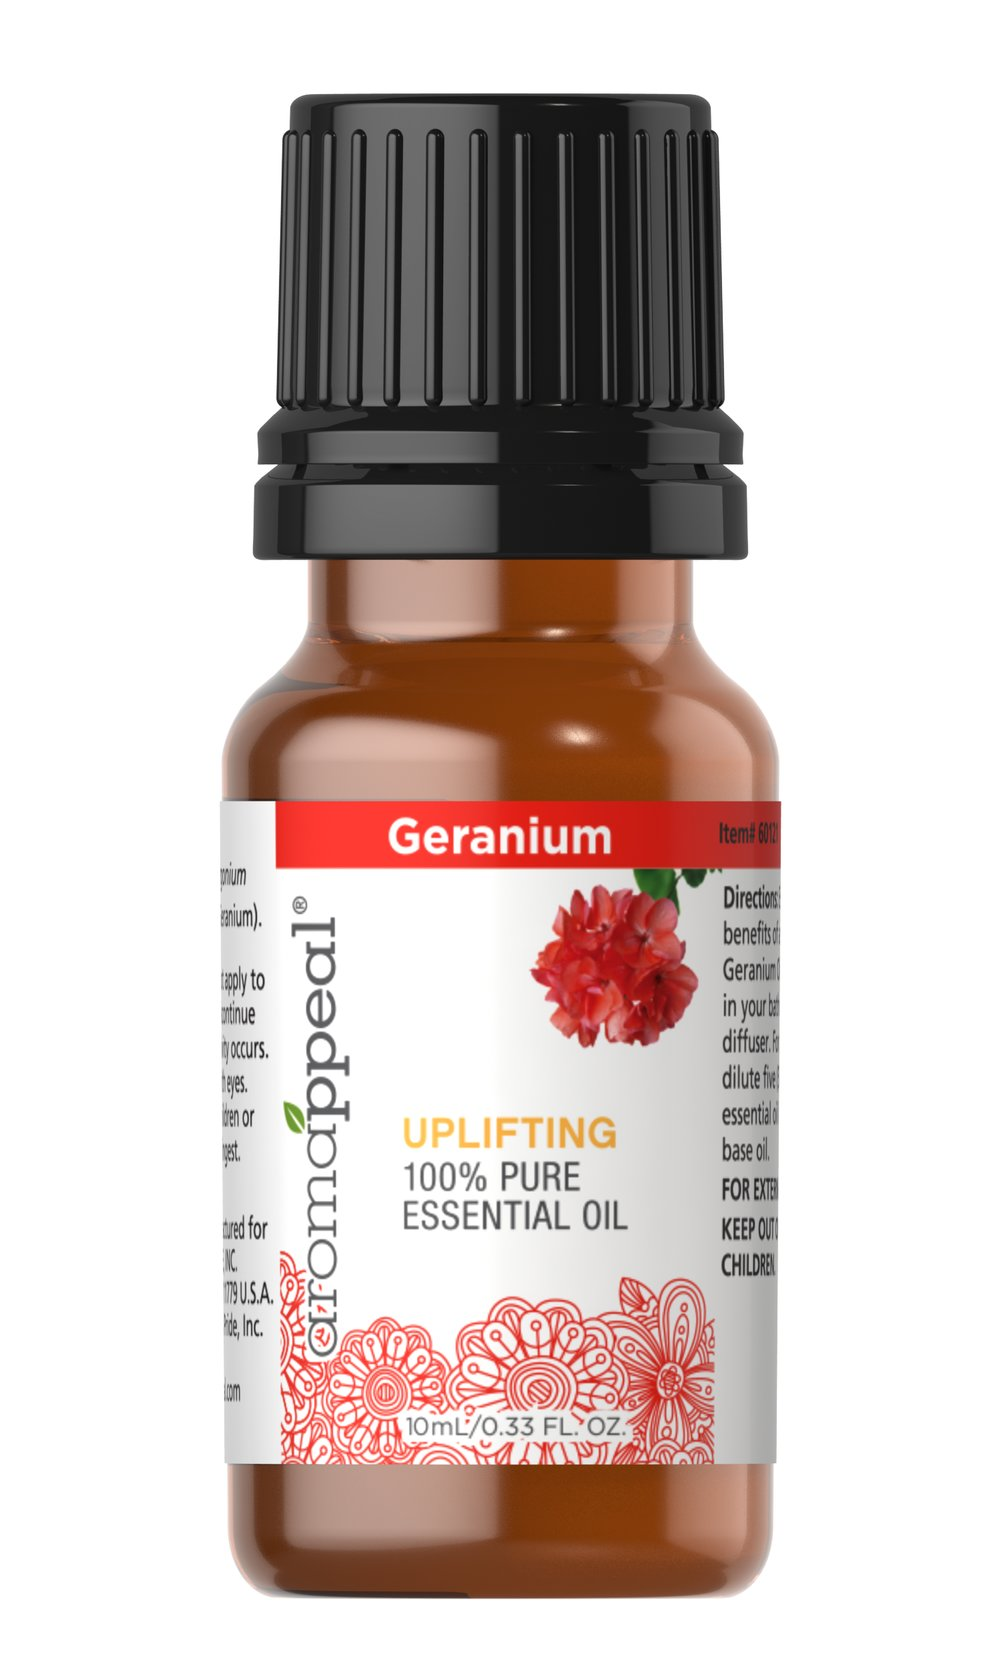 Geranium 100% Pure Essential Oil  10 ml Oil  $17.59